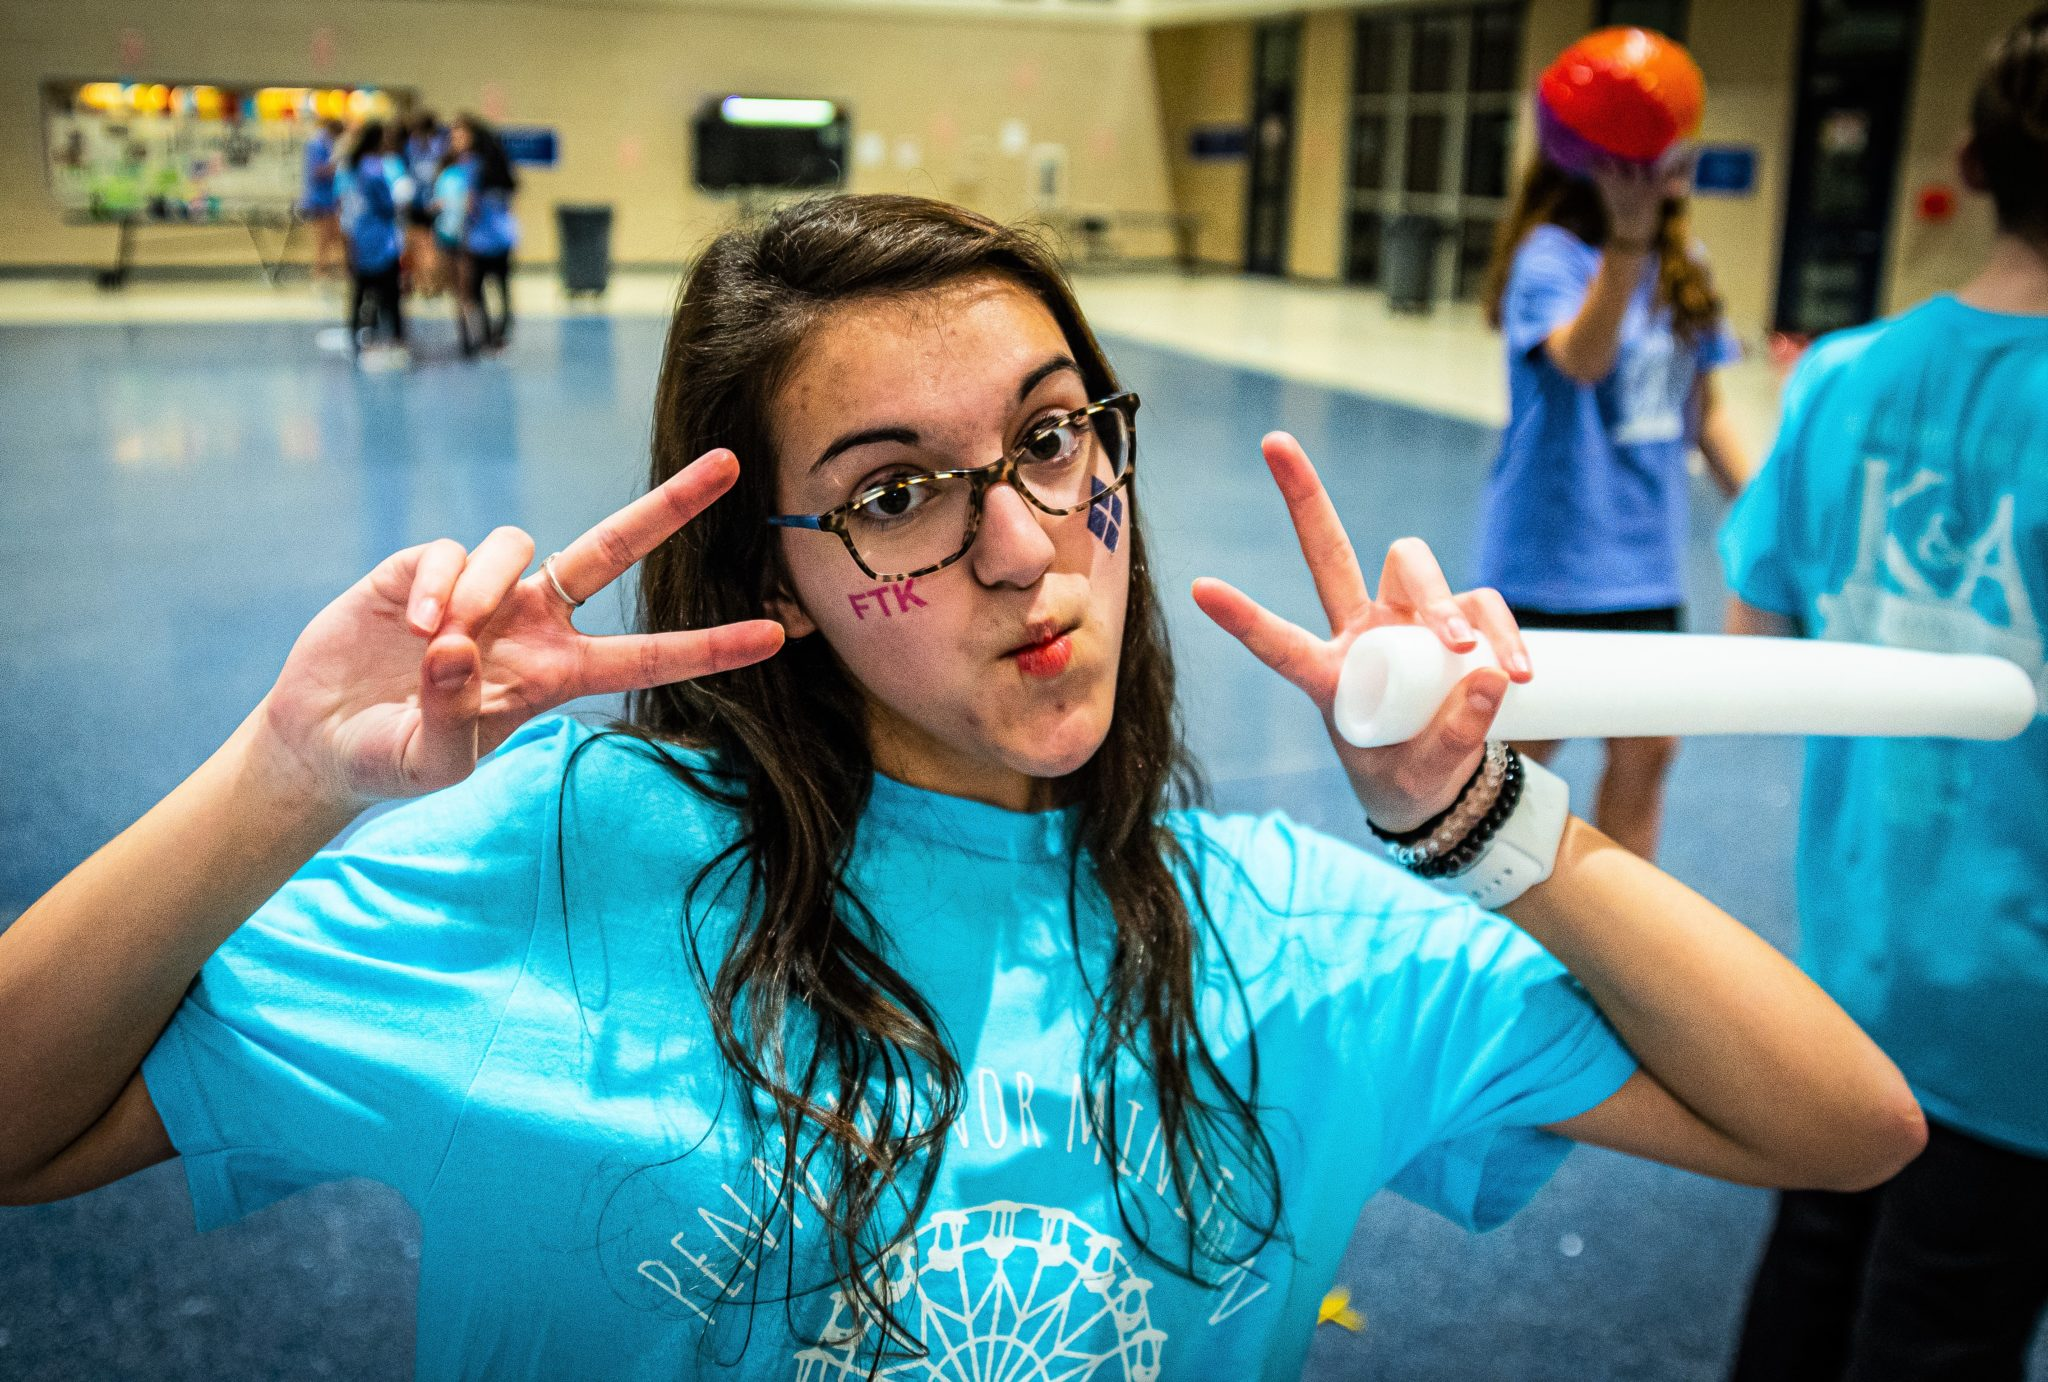 MiniTHON activities in cafeteria